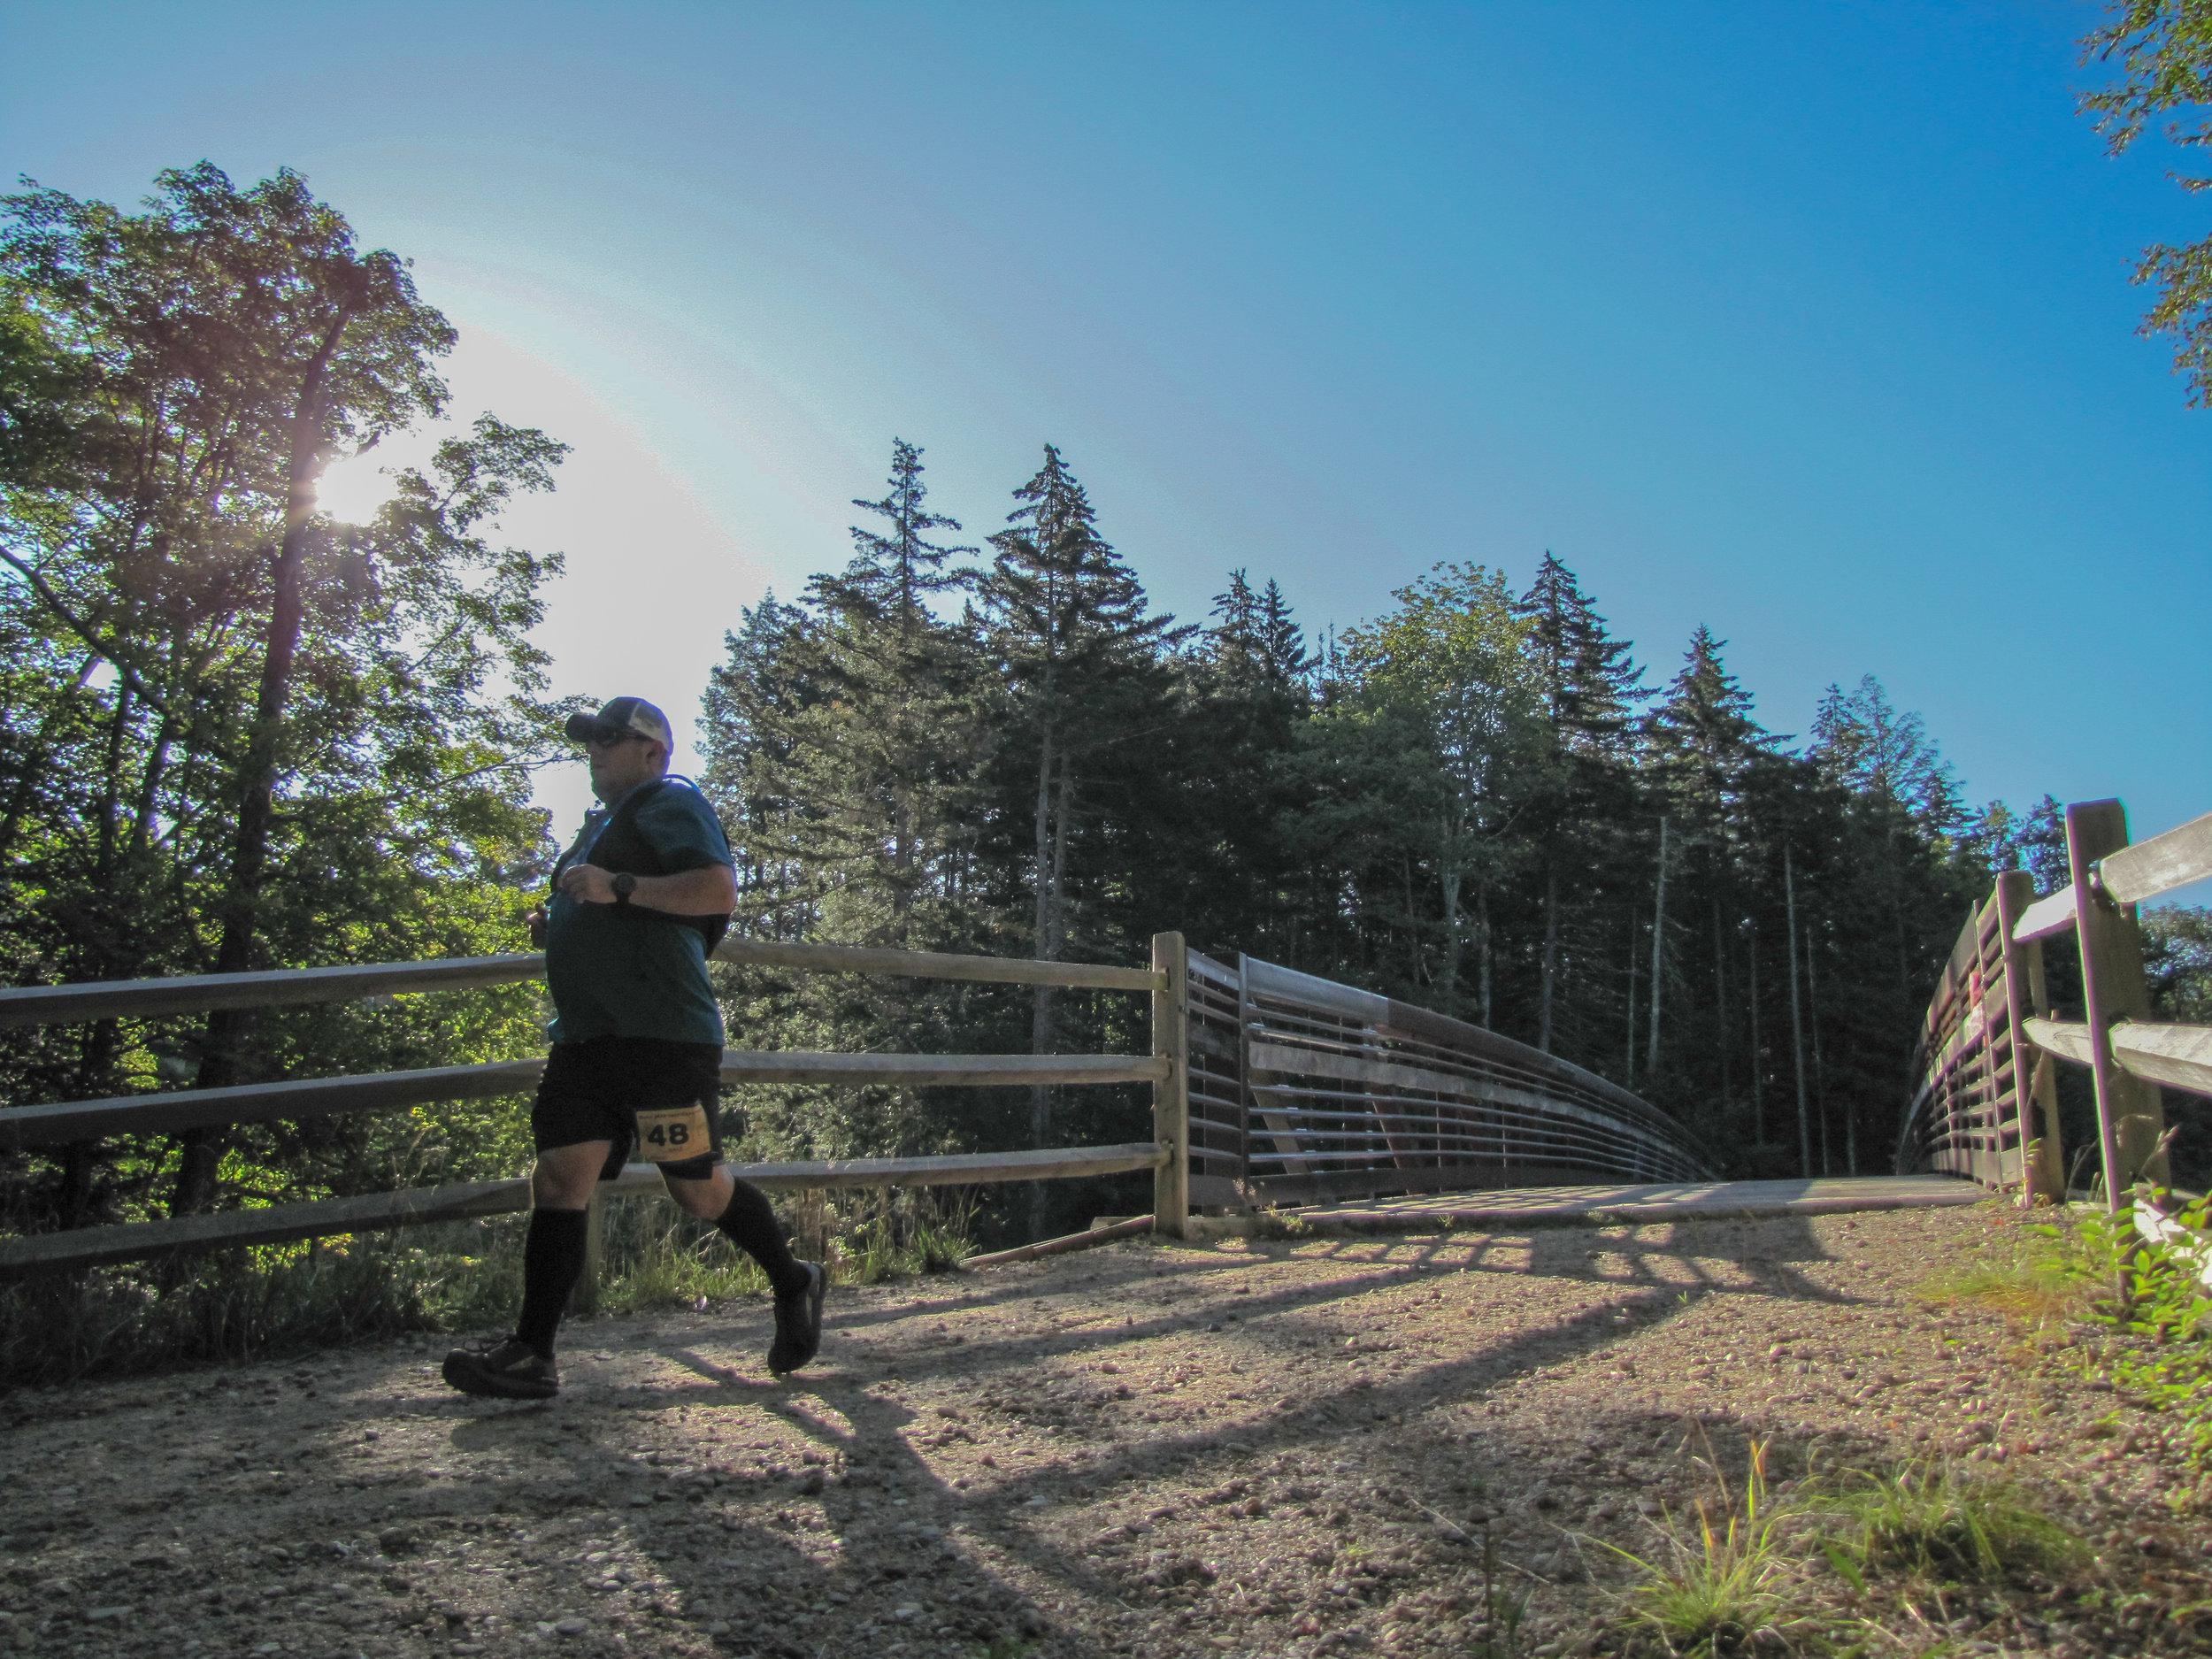 A more perfect day couldn't have been dreamed of for the revamp of the Black Bear Half Marathon, held Saturday, August 31st in Waterville Valley. Having been last run primarily on road in 2016, the race is back in name and evolved in form. This year's full fledged Black Bear Trail Half Marathon delivered 800 feet of elevation gain over 13.5 miles of smooth forest road, technical single track, and just enough mud to satisfy.